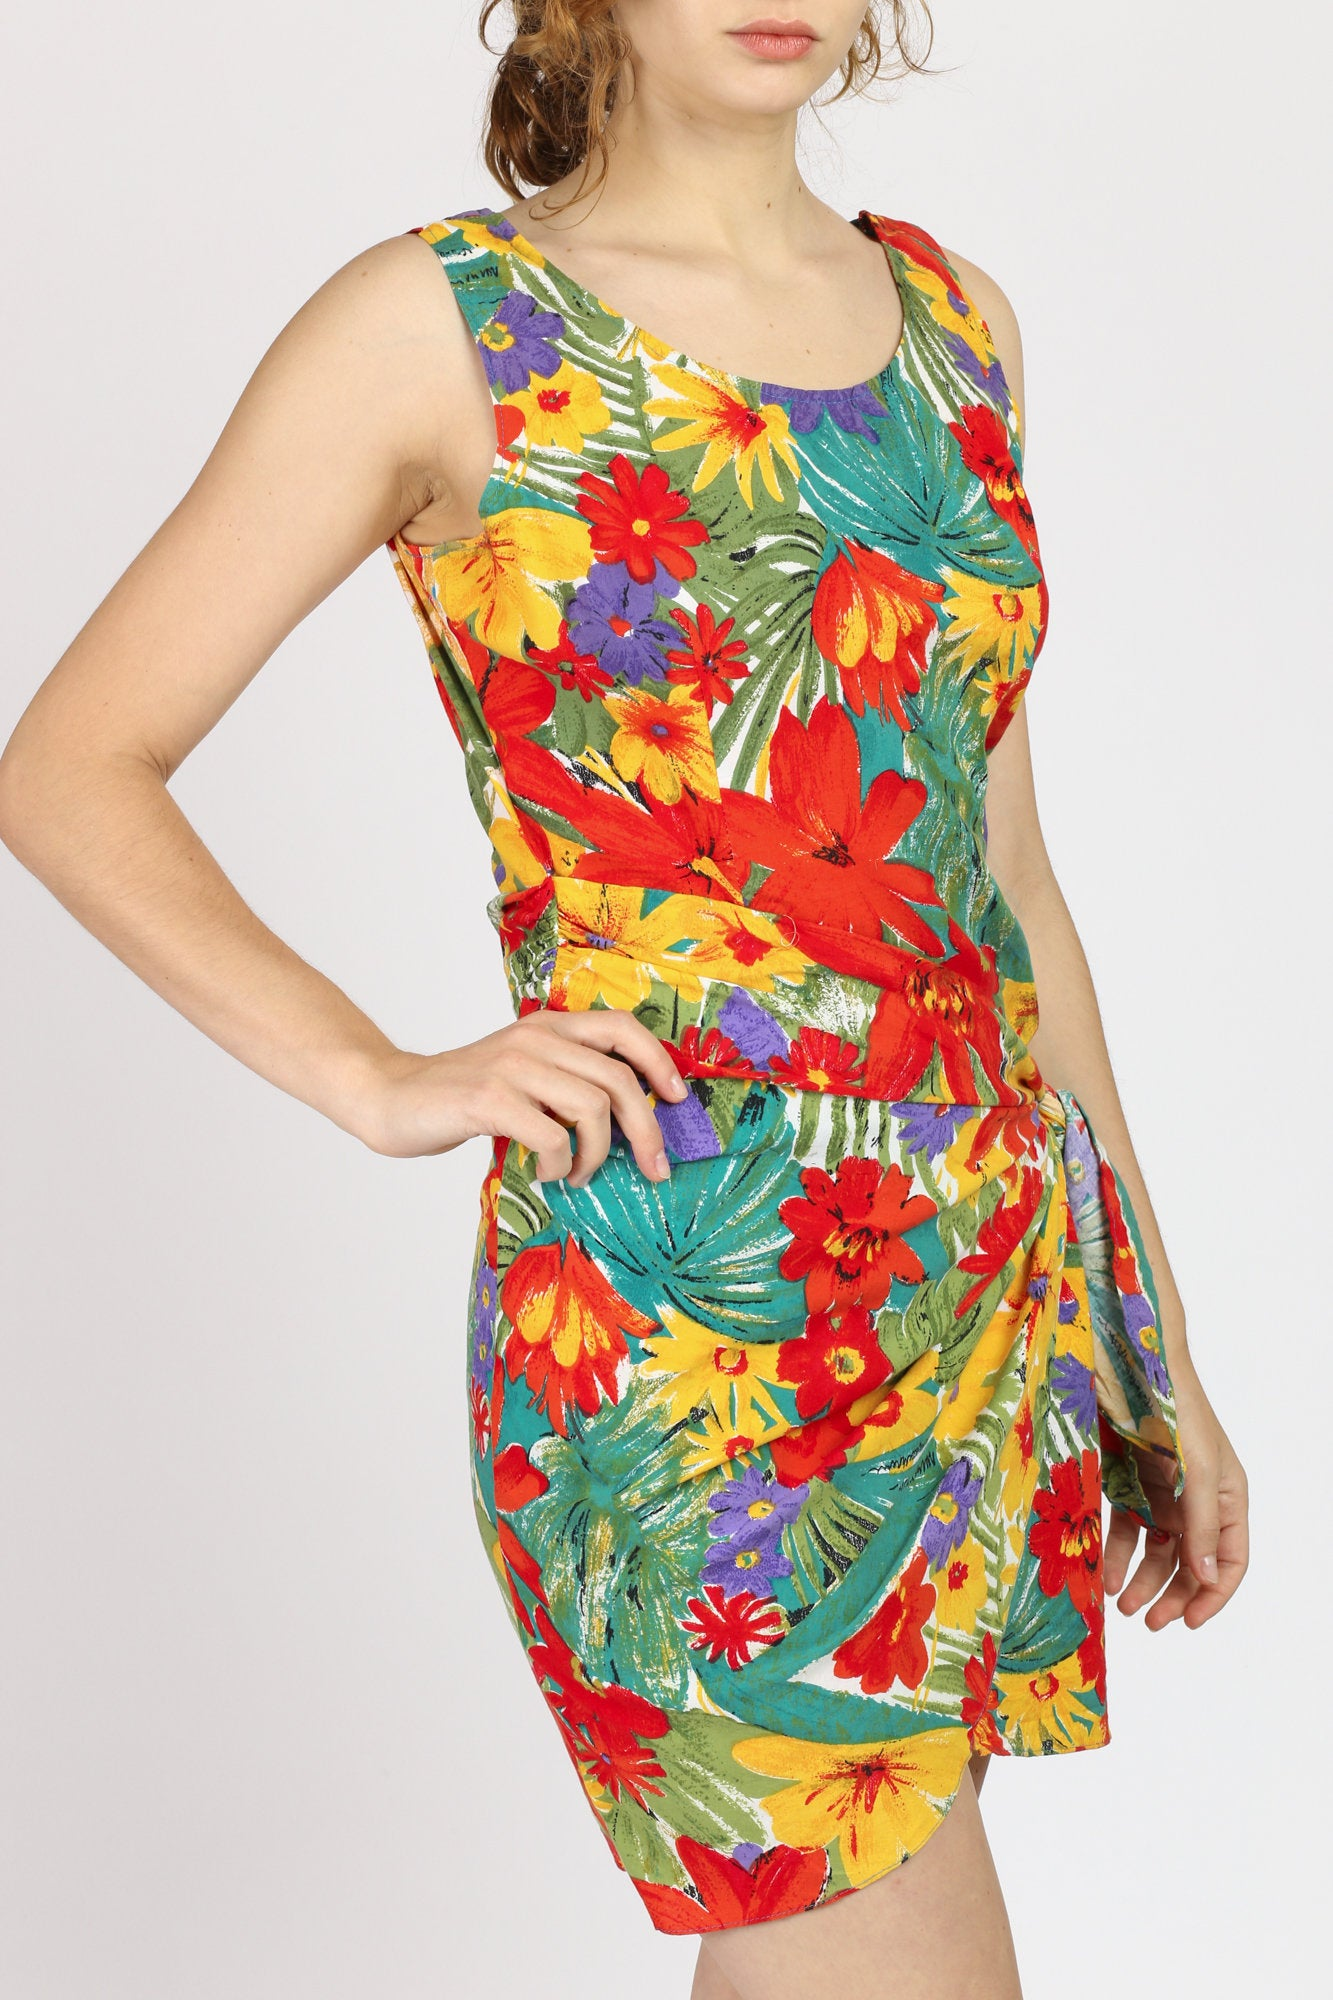 90s Tropical Floral Mini Dress - Large